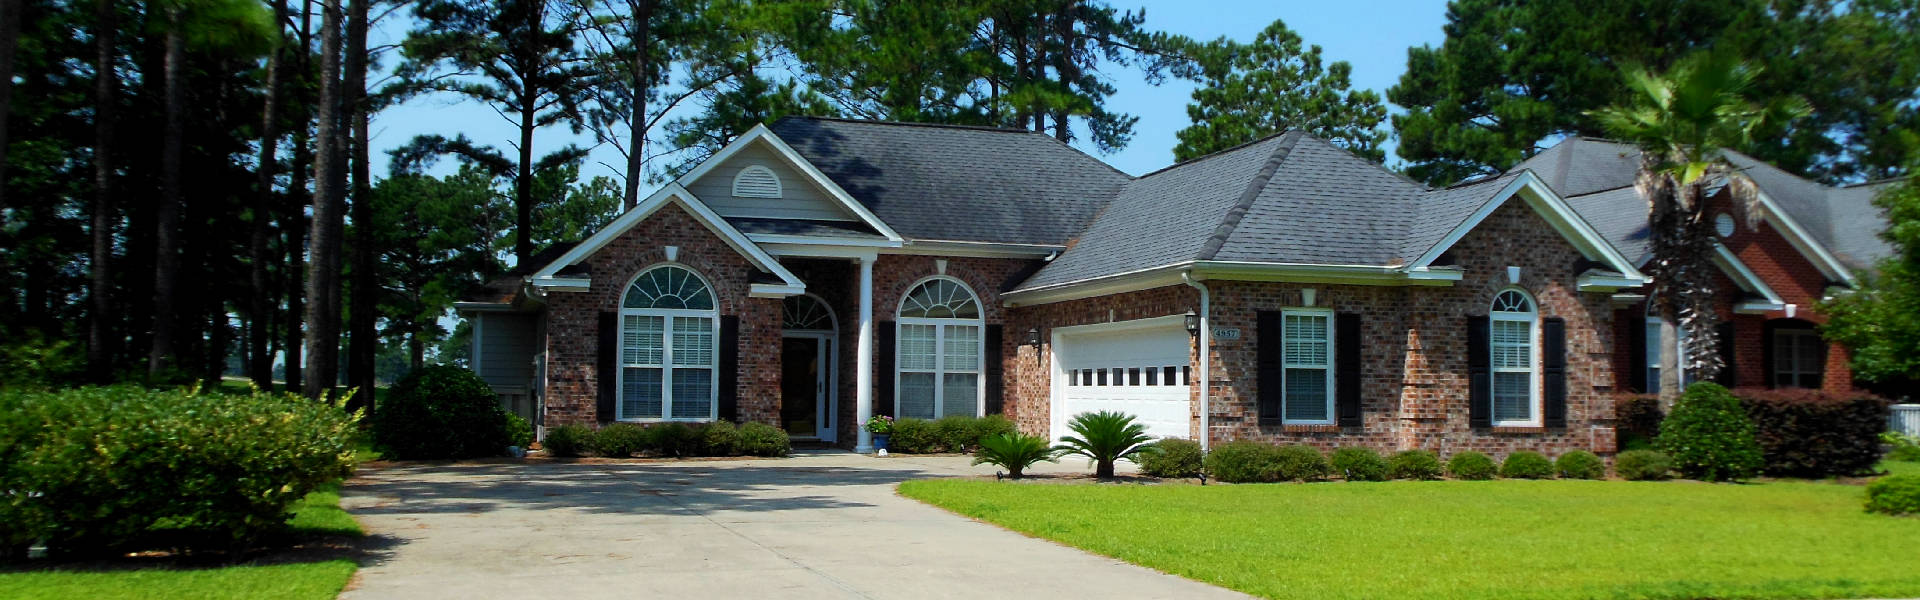 Homes, Condos, & Land For Sale in Myrtle Beach and Nearby Grand Strand Communities